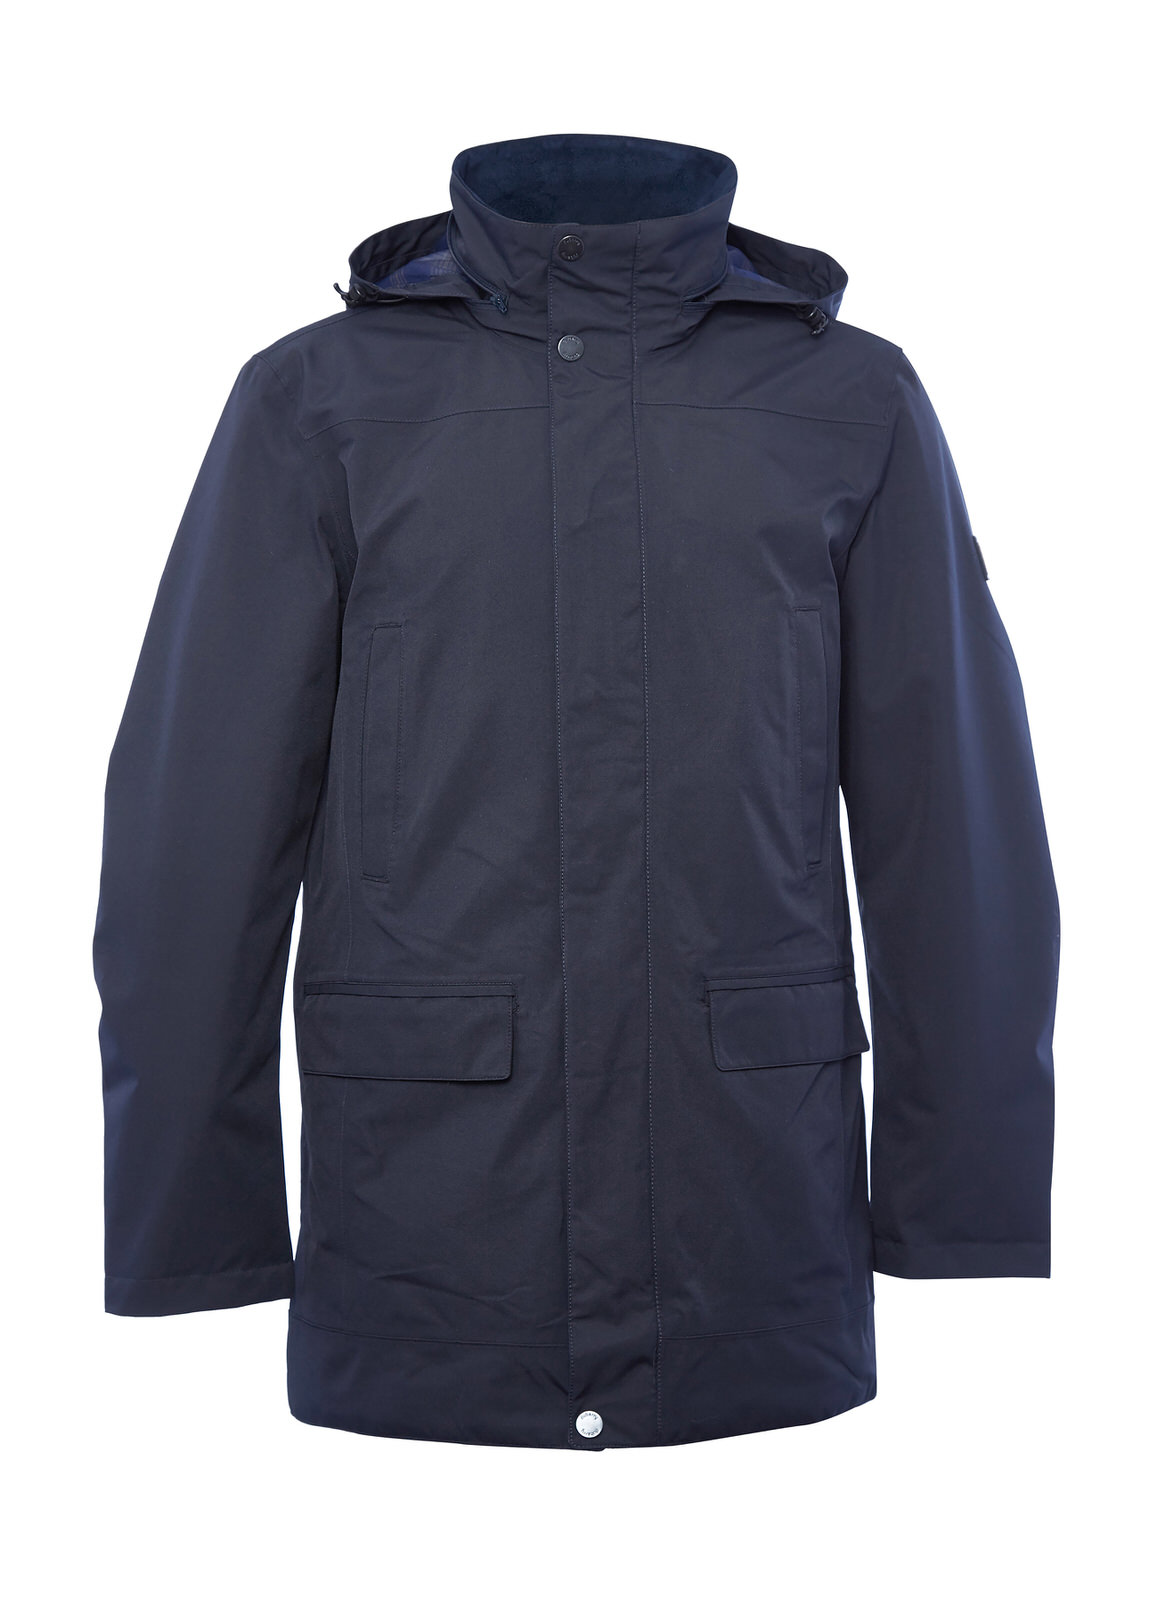 Ballywater_Coat_Navy_Image_1